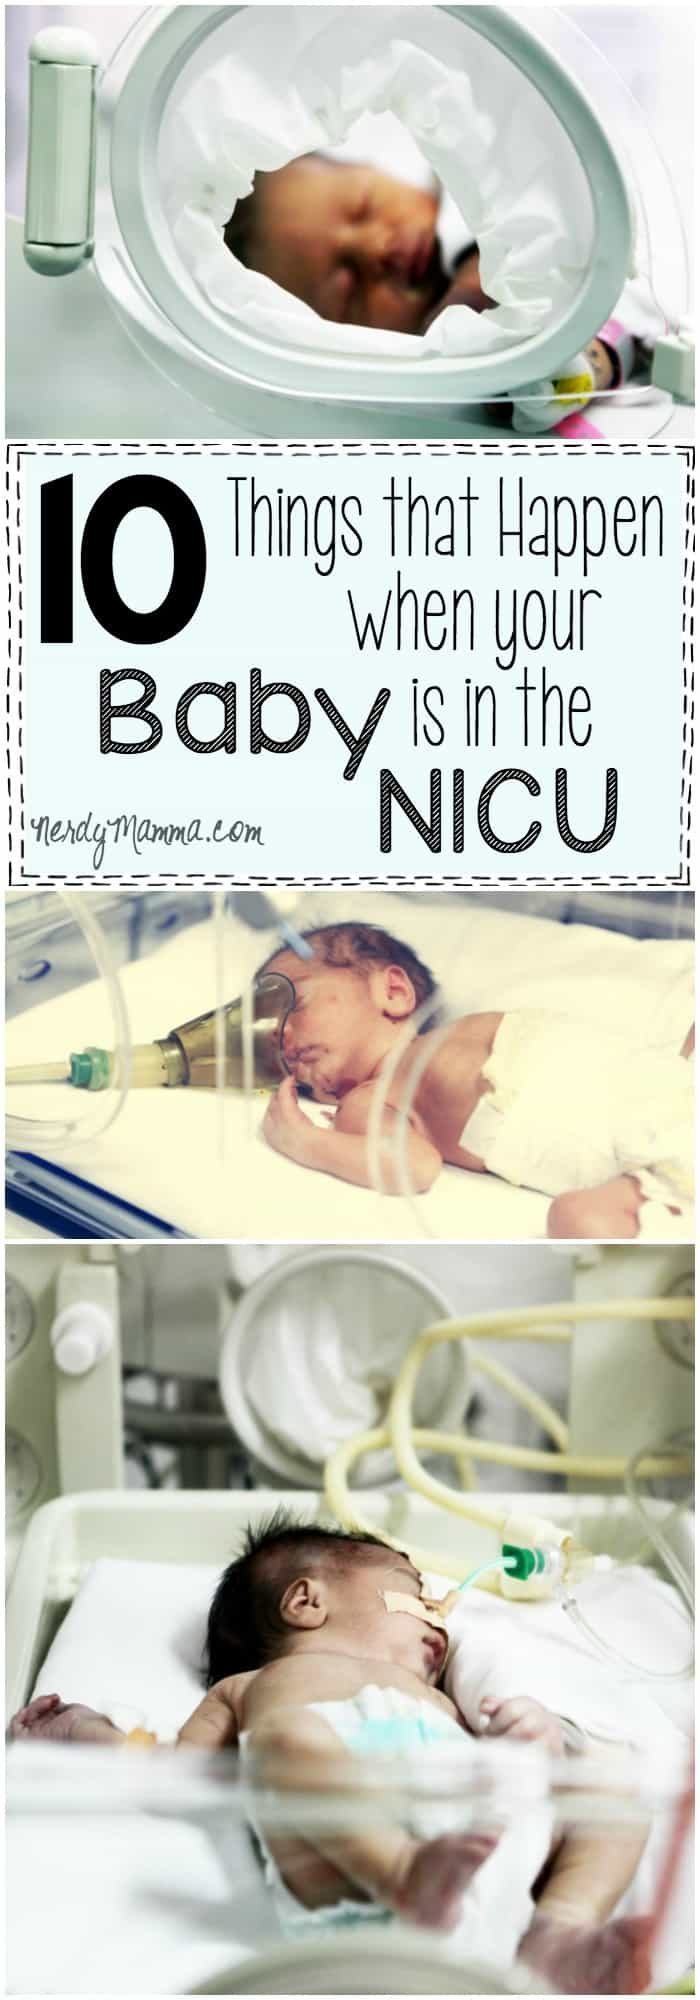 This article about what it feels like for your baby to be in the NICU is so so true. Brought back all the memories.